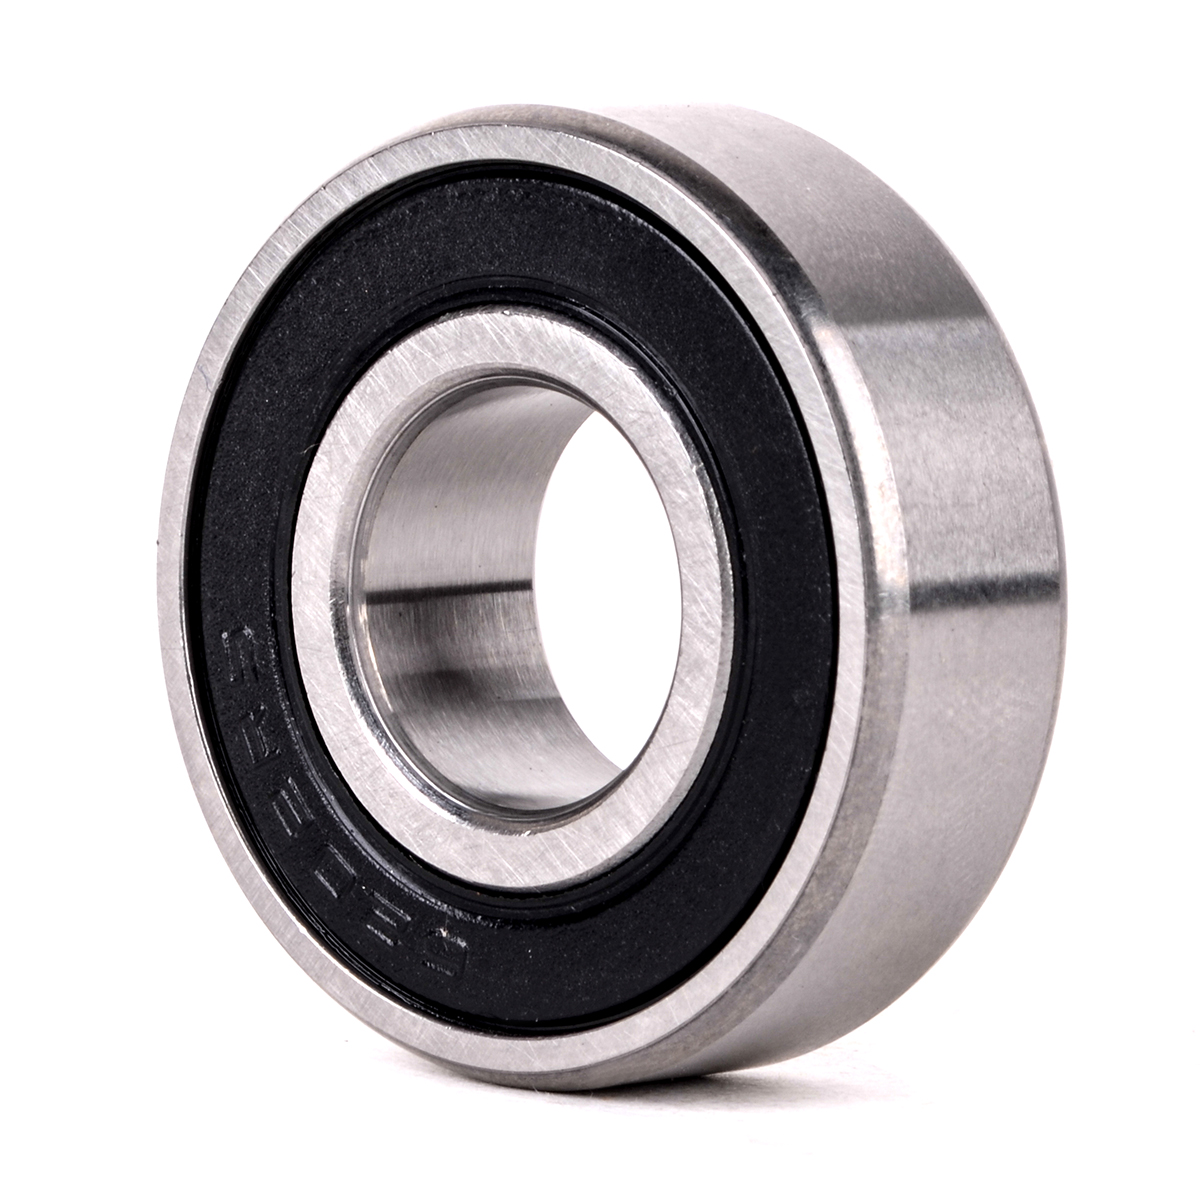 1pc 6202-2RS Shielded Deep Groove Bearing Black Silver Rubber Sealed Ball Bearings for Electric Motors Mayitr 15mm*35mm*11mm 10pcs 5x10x4mm metal sealed shielded deep groove ball bearing mr105zz